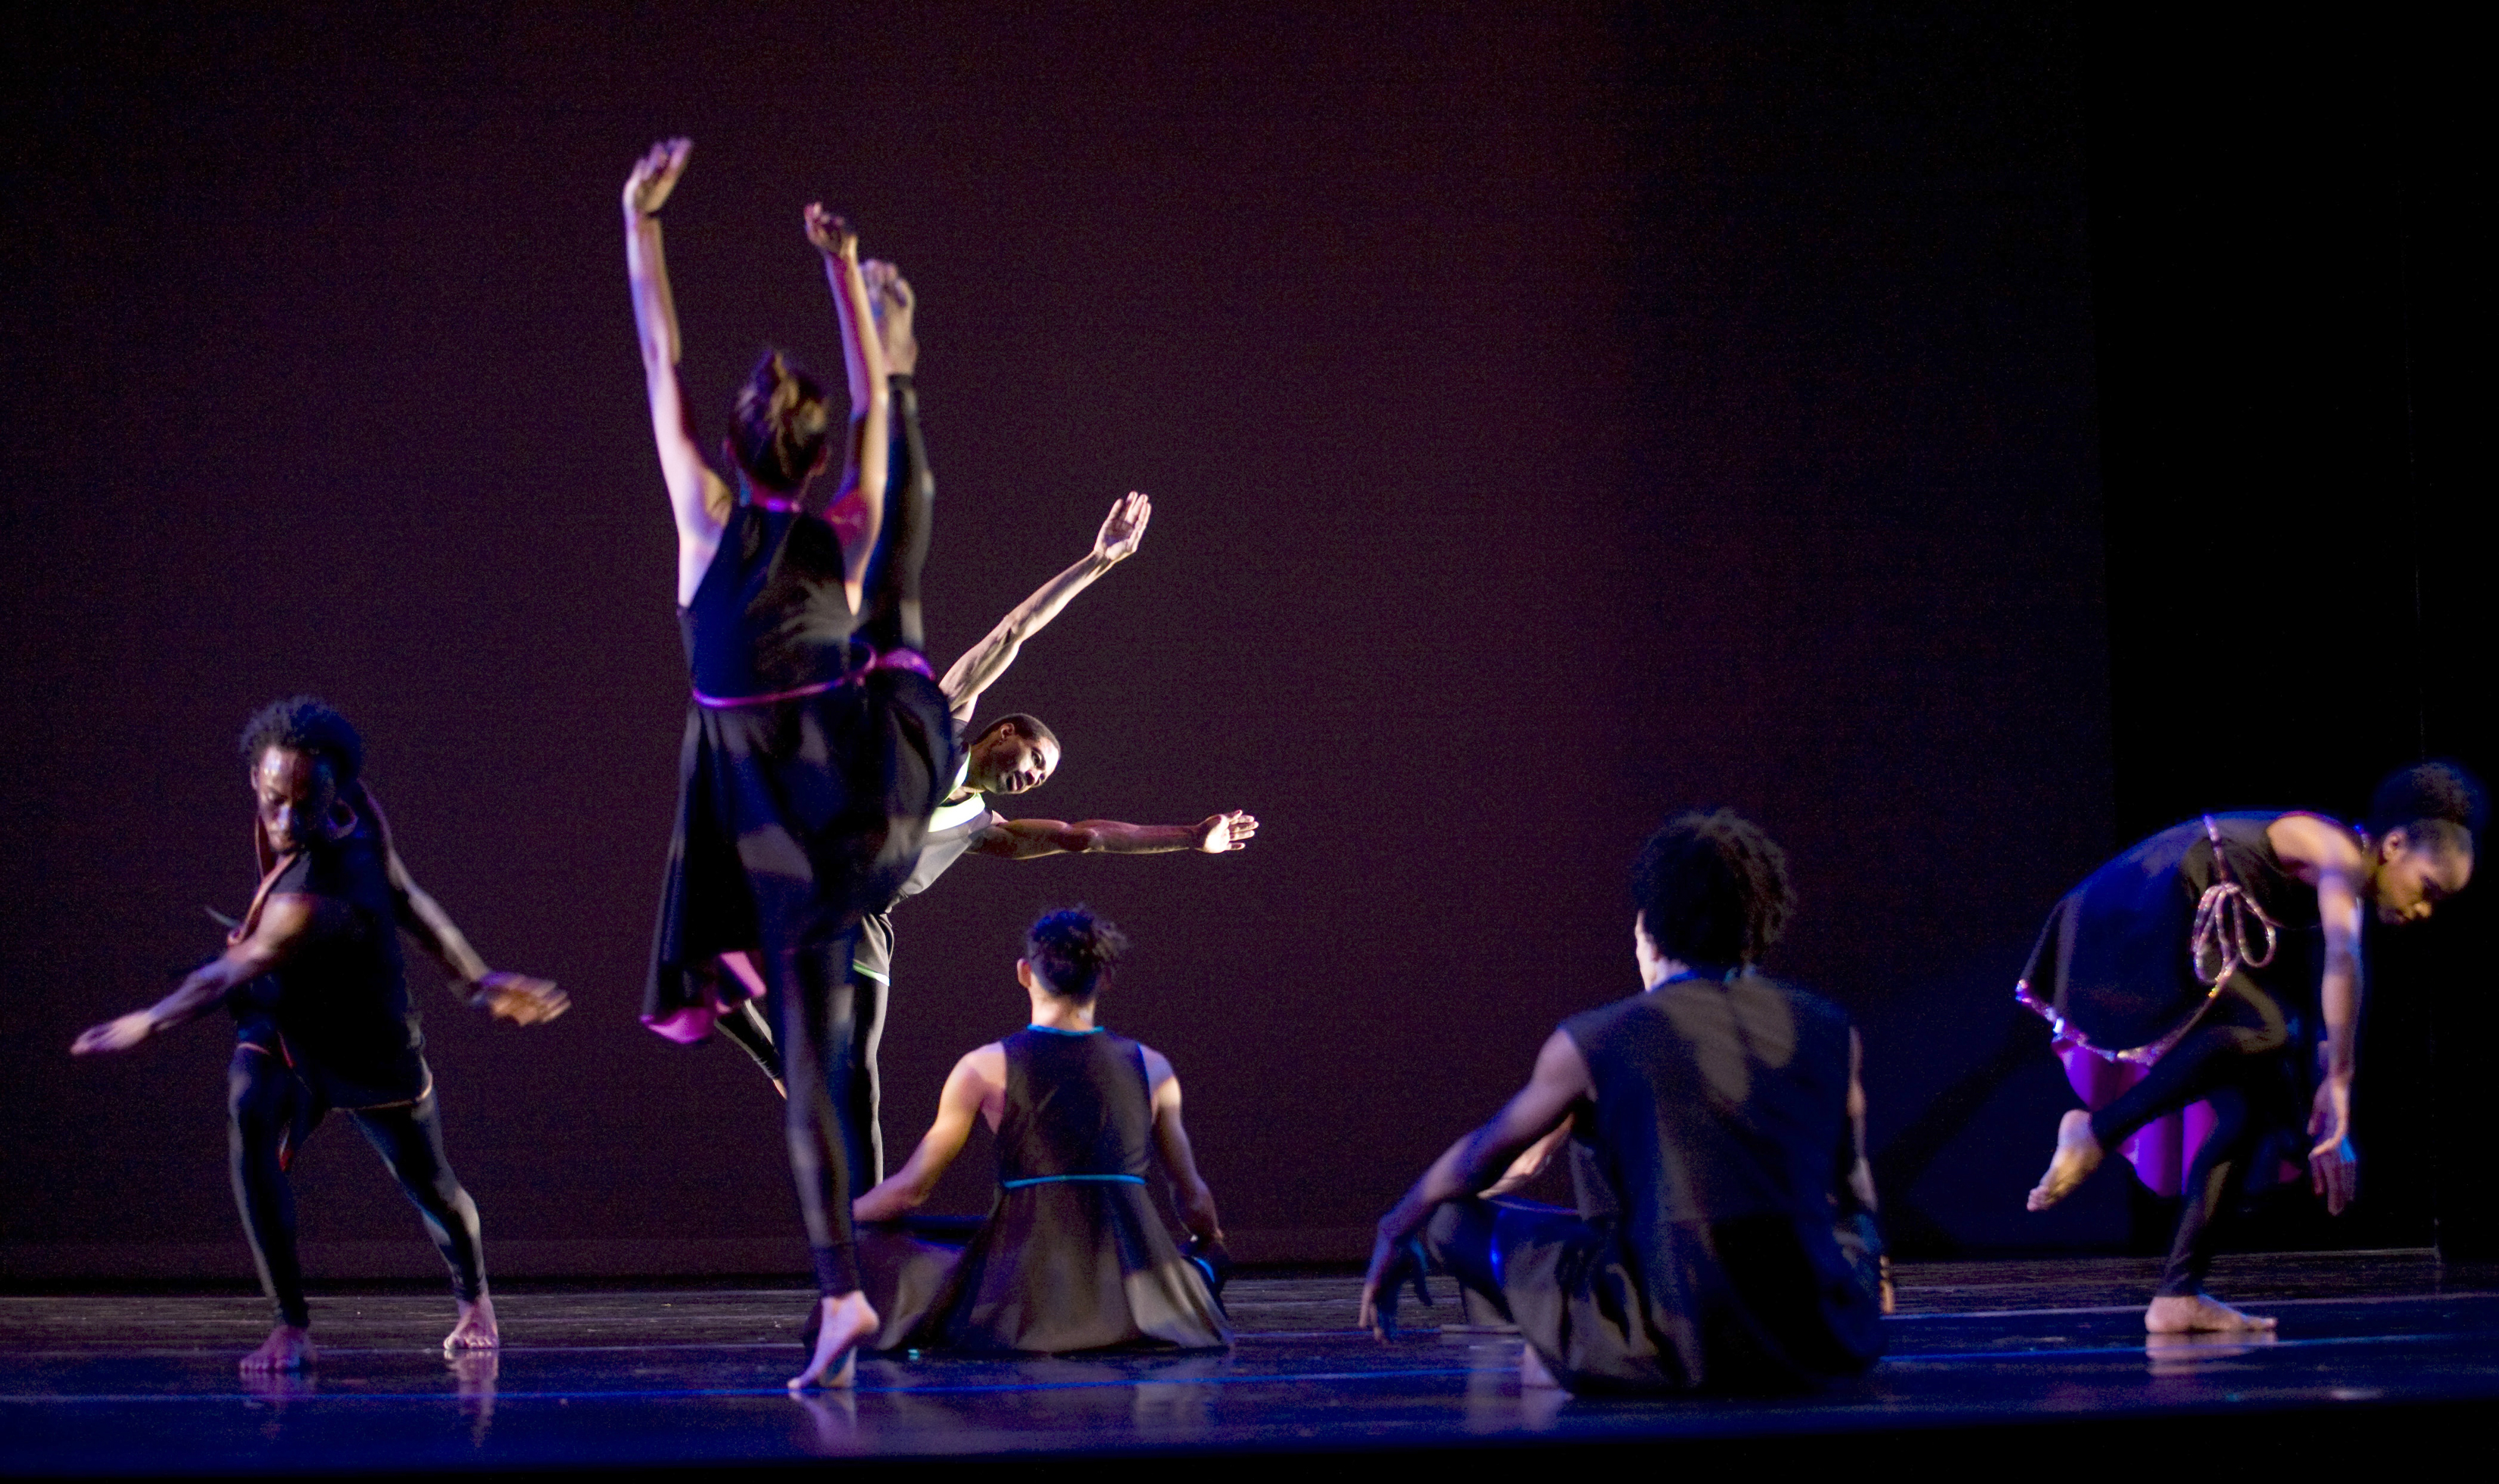 Garth Fagan Dance photo by Greg Barrett in EDGE/JOY